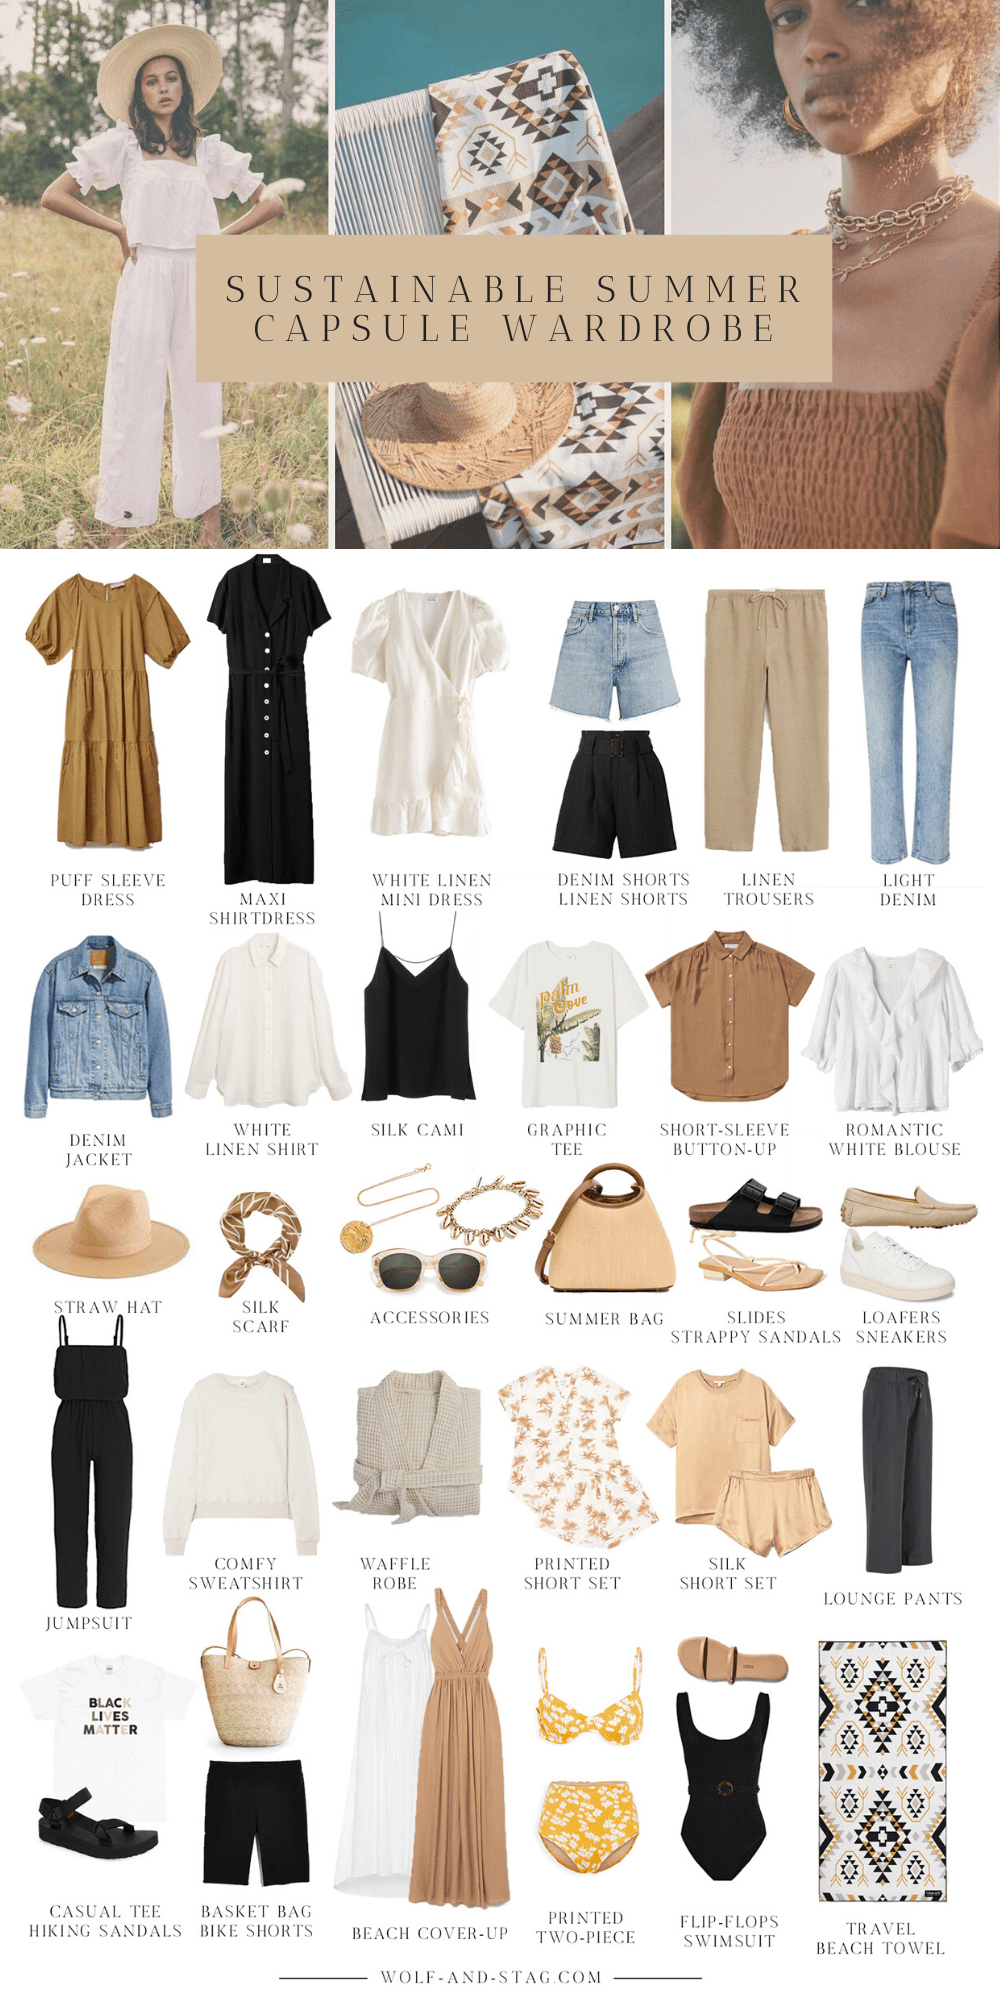 The Mostly Sustainable Summer Capsule Wardrobe, Summer 2020 | Wolf & Stag